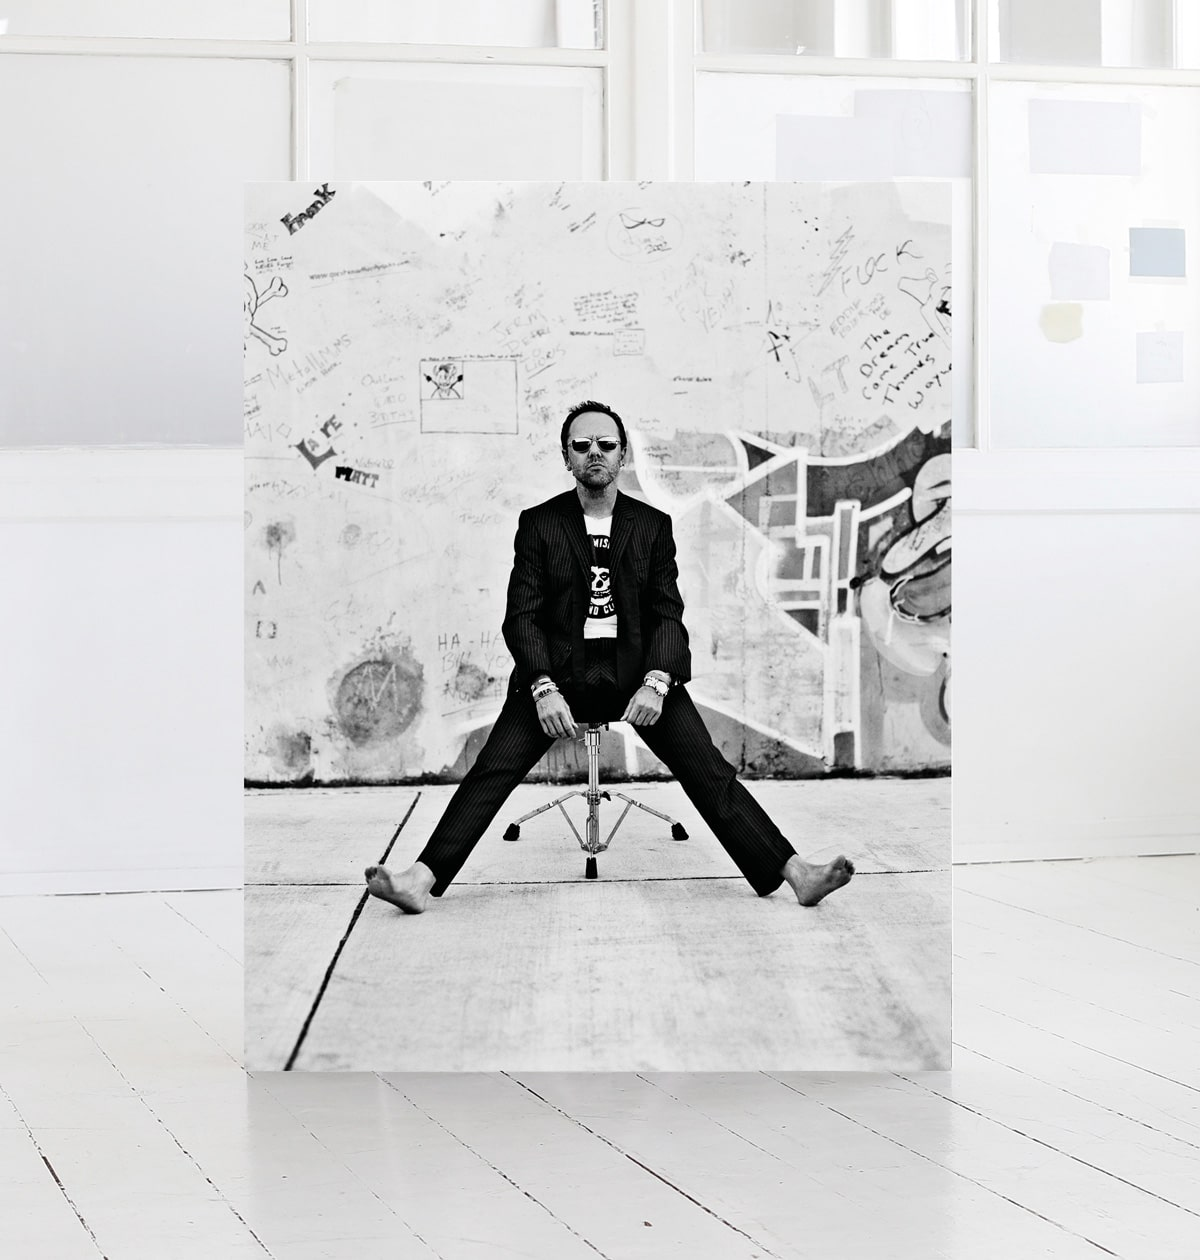 Lars Ulrich, print by photographer Morten Larsen